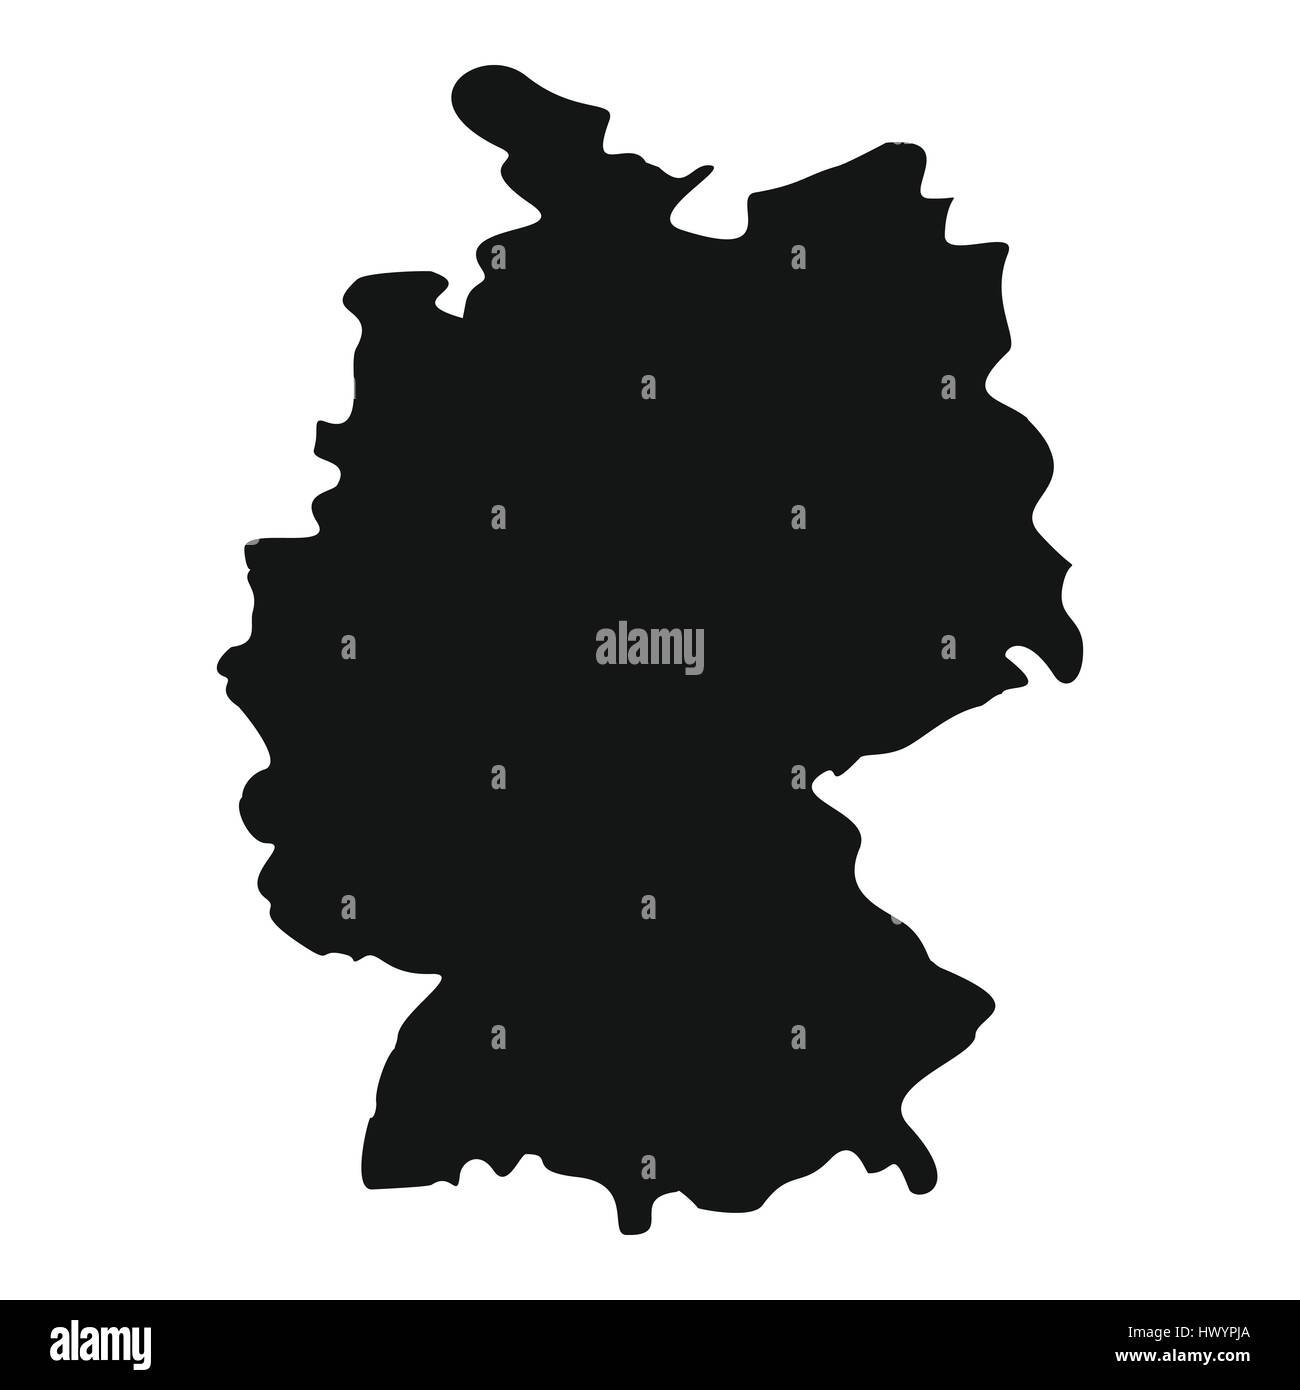 Simple Map Of Germany.Map Of Germany Icon Simple Style Stock Vector Art Illustration